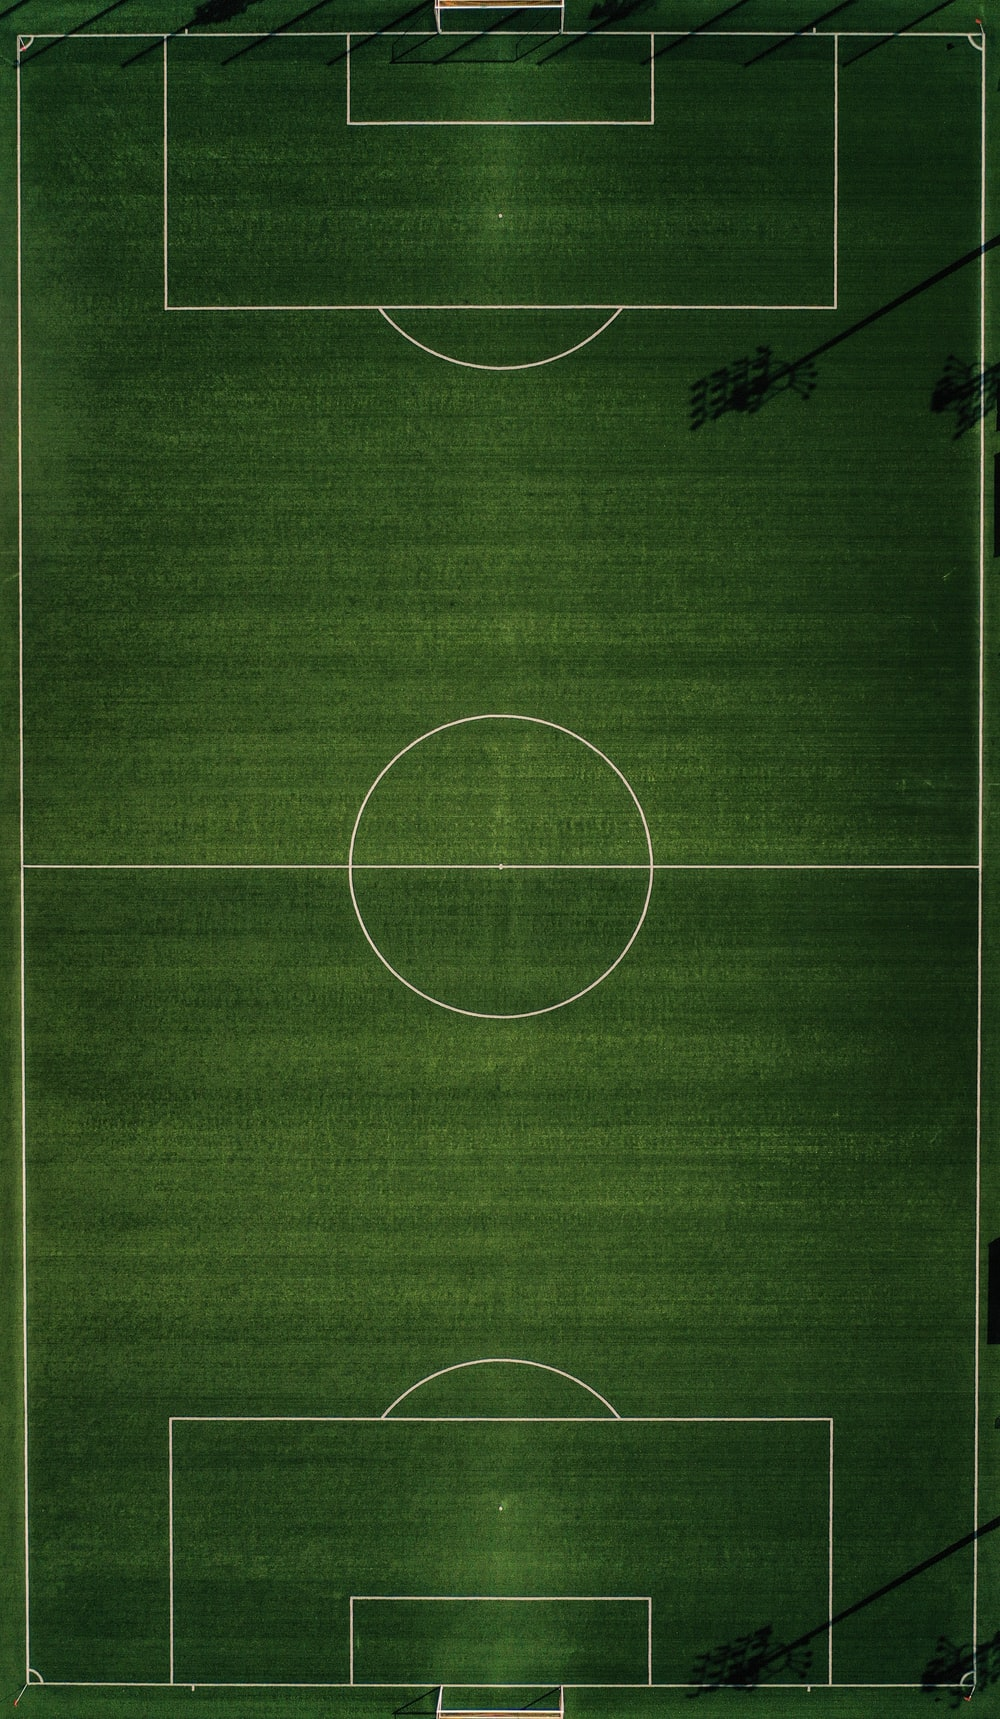 550 Soccer Field Pictures Download Free Images On Unsplash